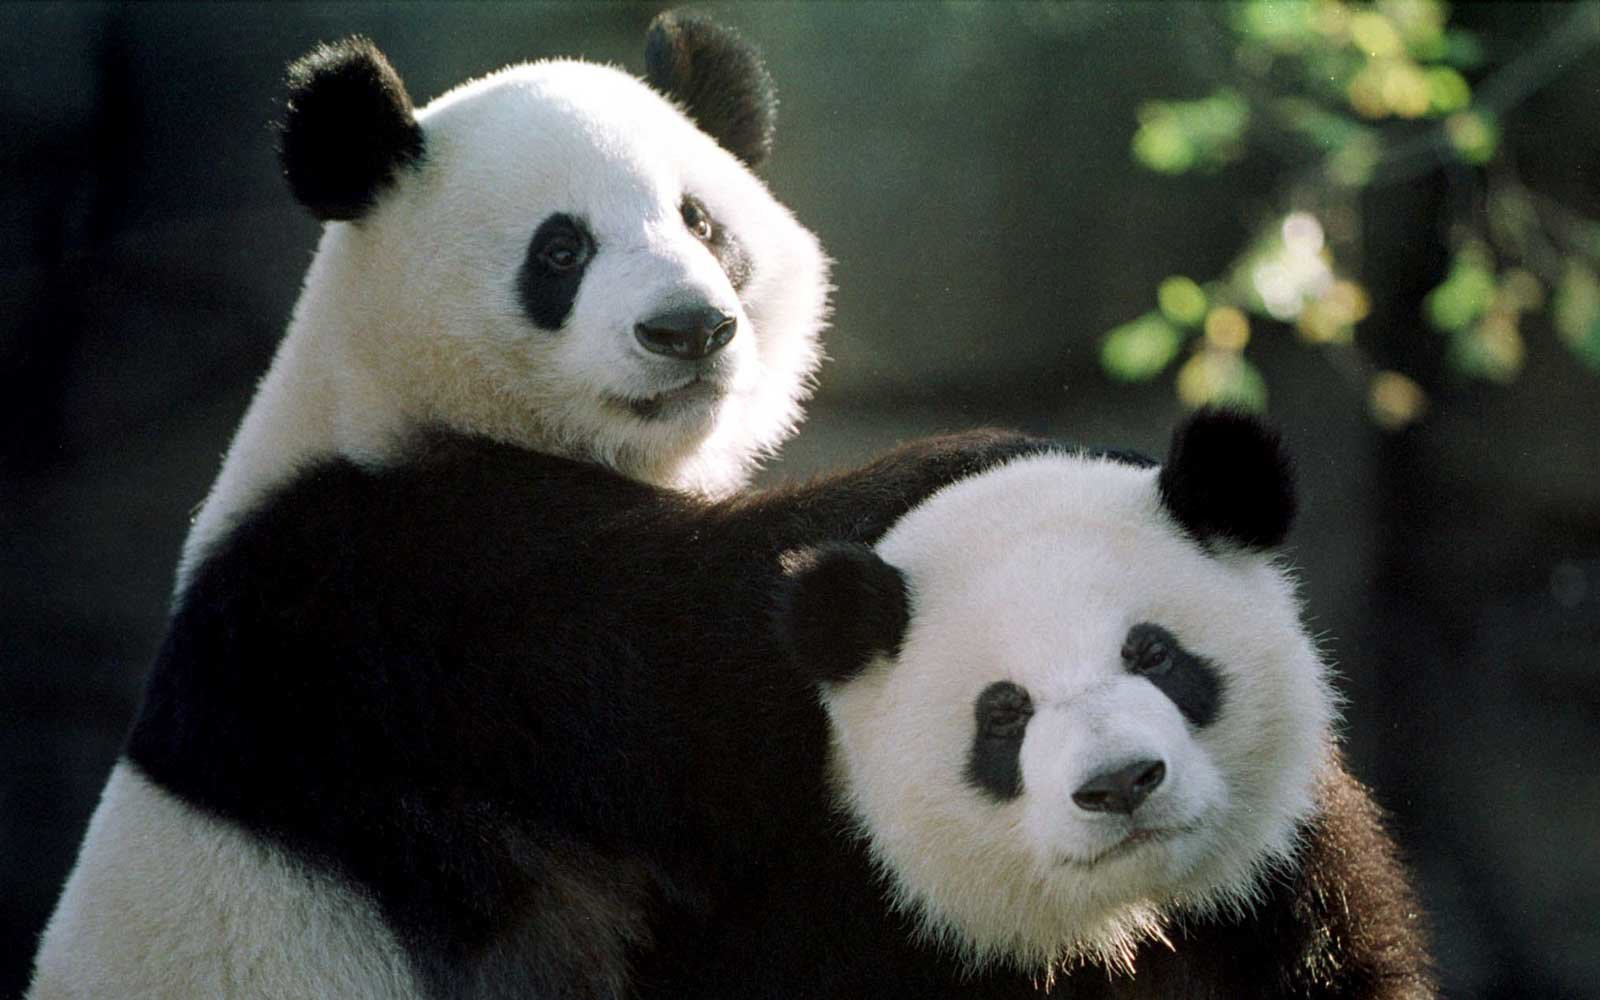 How Many Giant Pandas Are Left in the World? | Giant panda